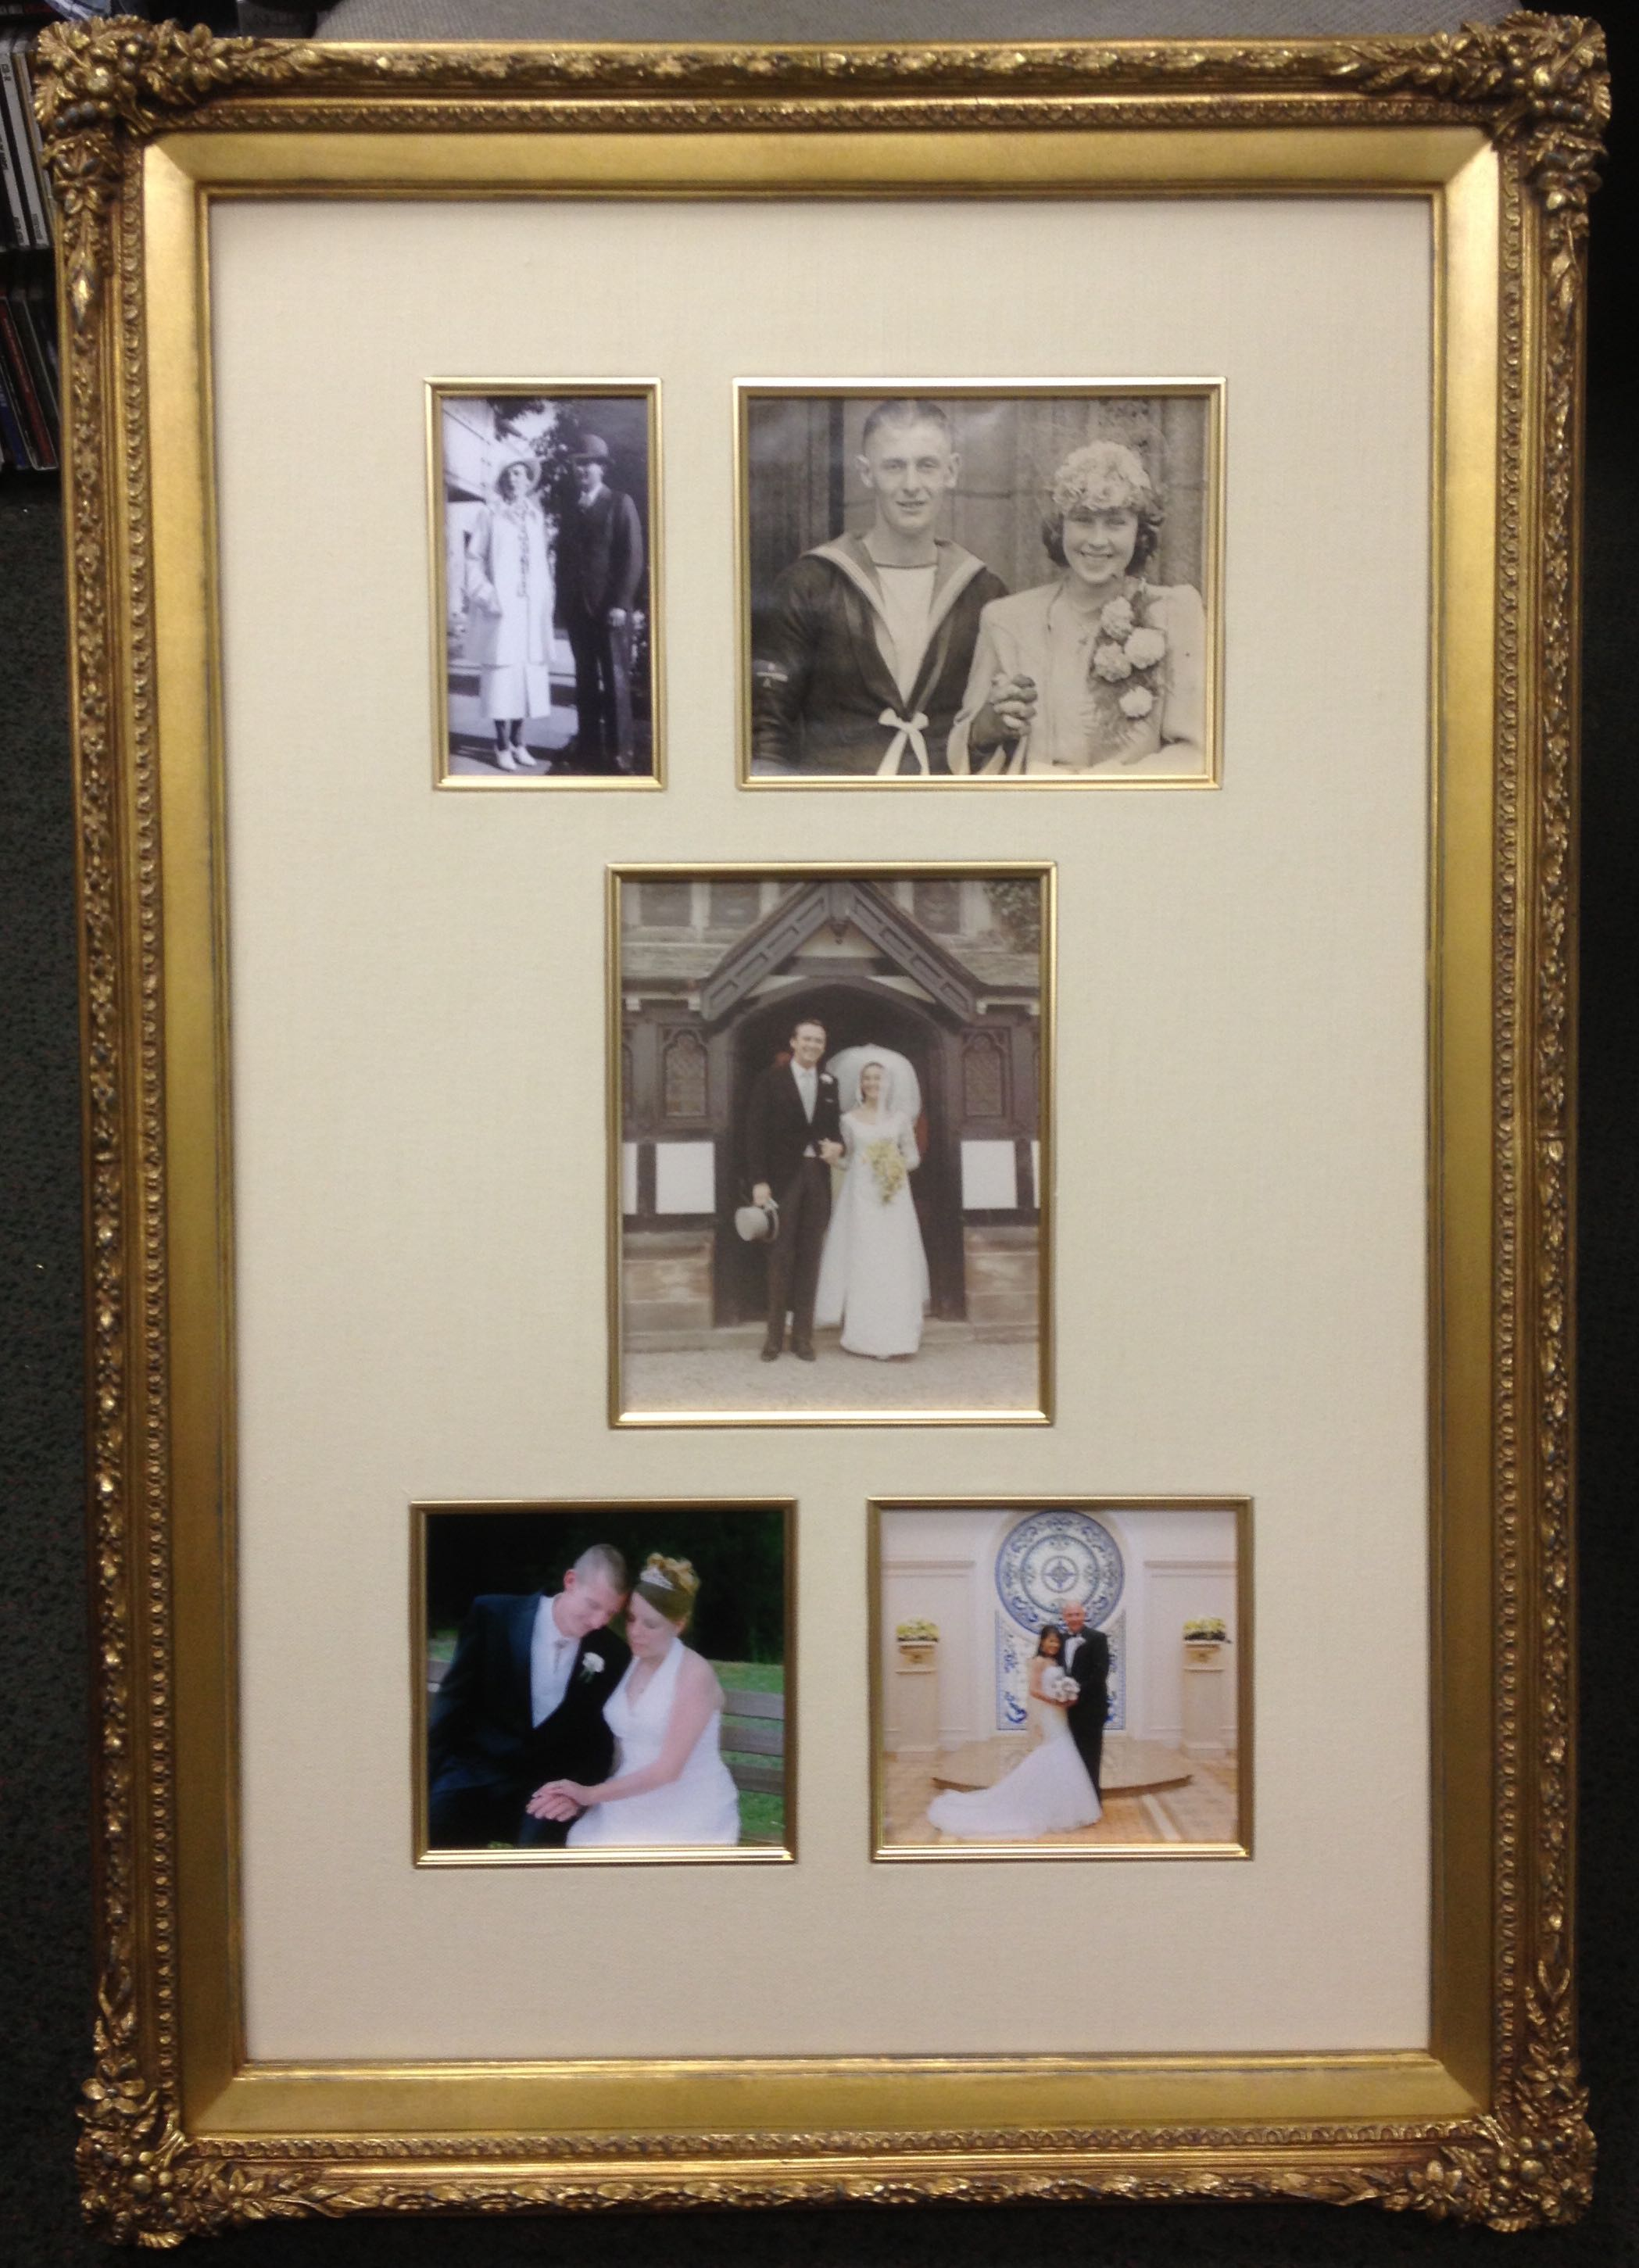 Custom Picture Framing Costa Mesa (714) 396-3301